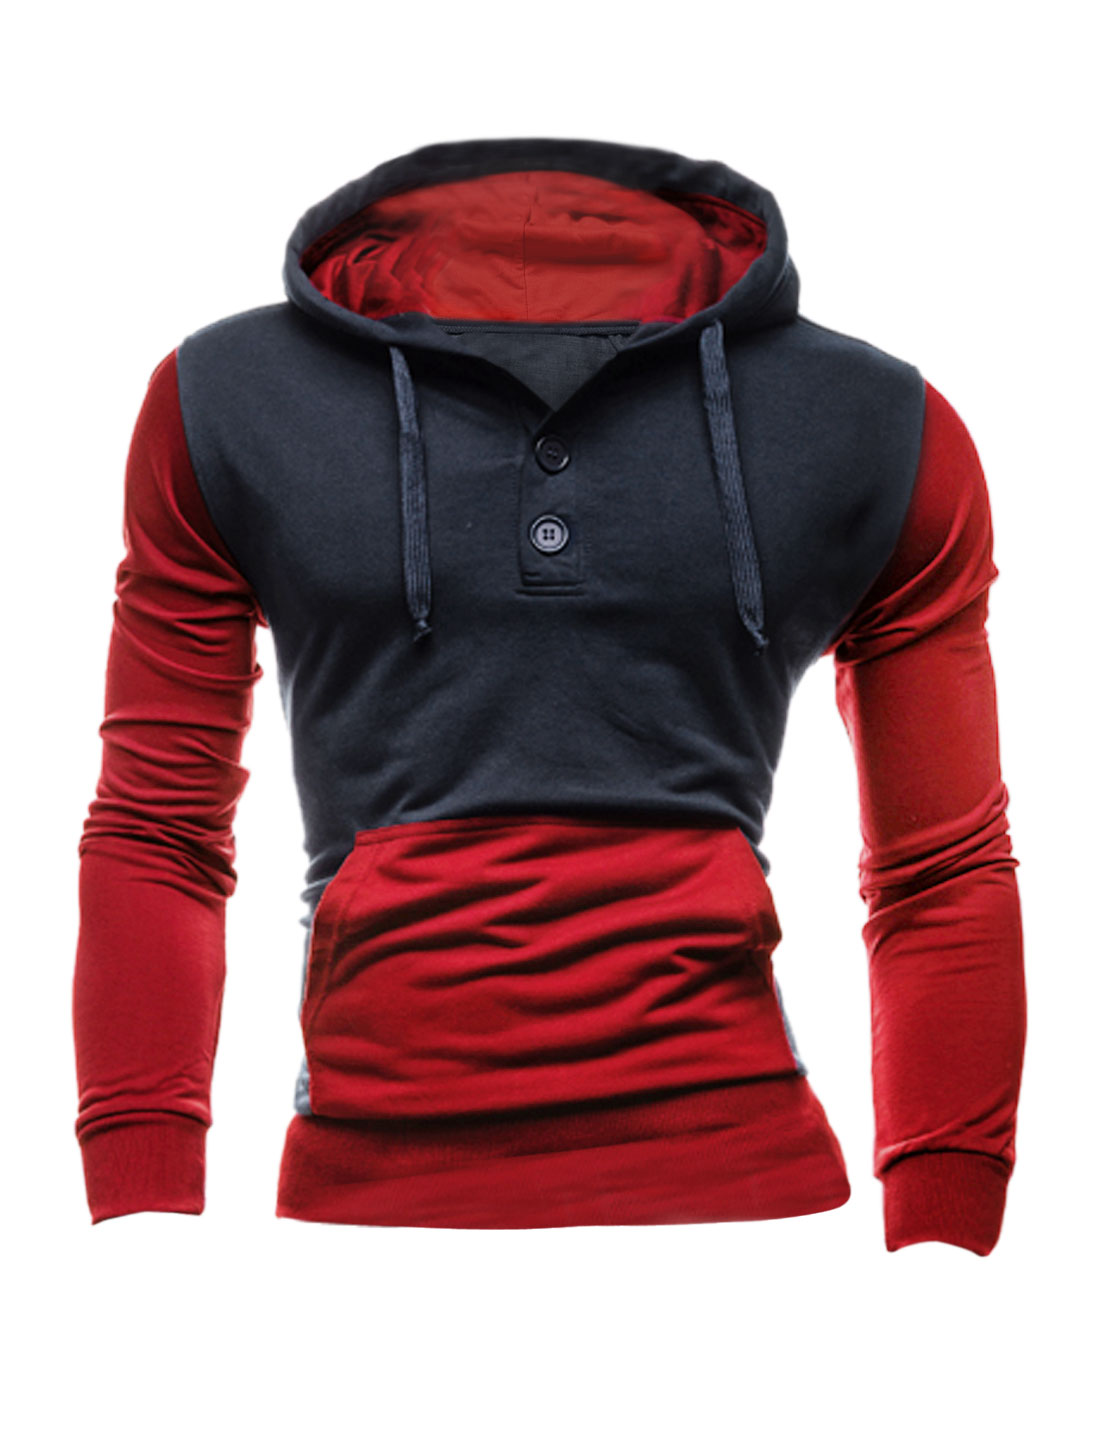 Men Long Sleeve Color Blocking Hoodie Sweatshirt Red Navy Blue M